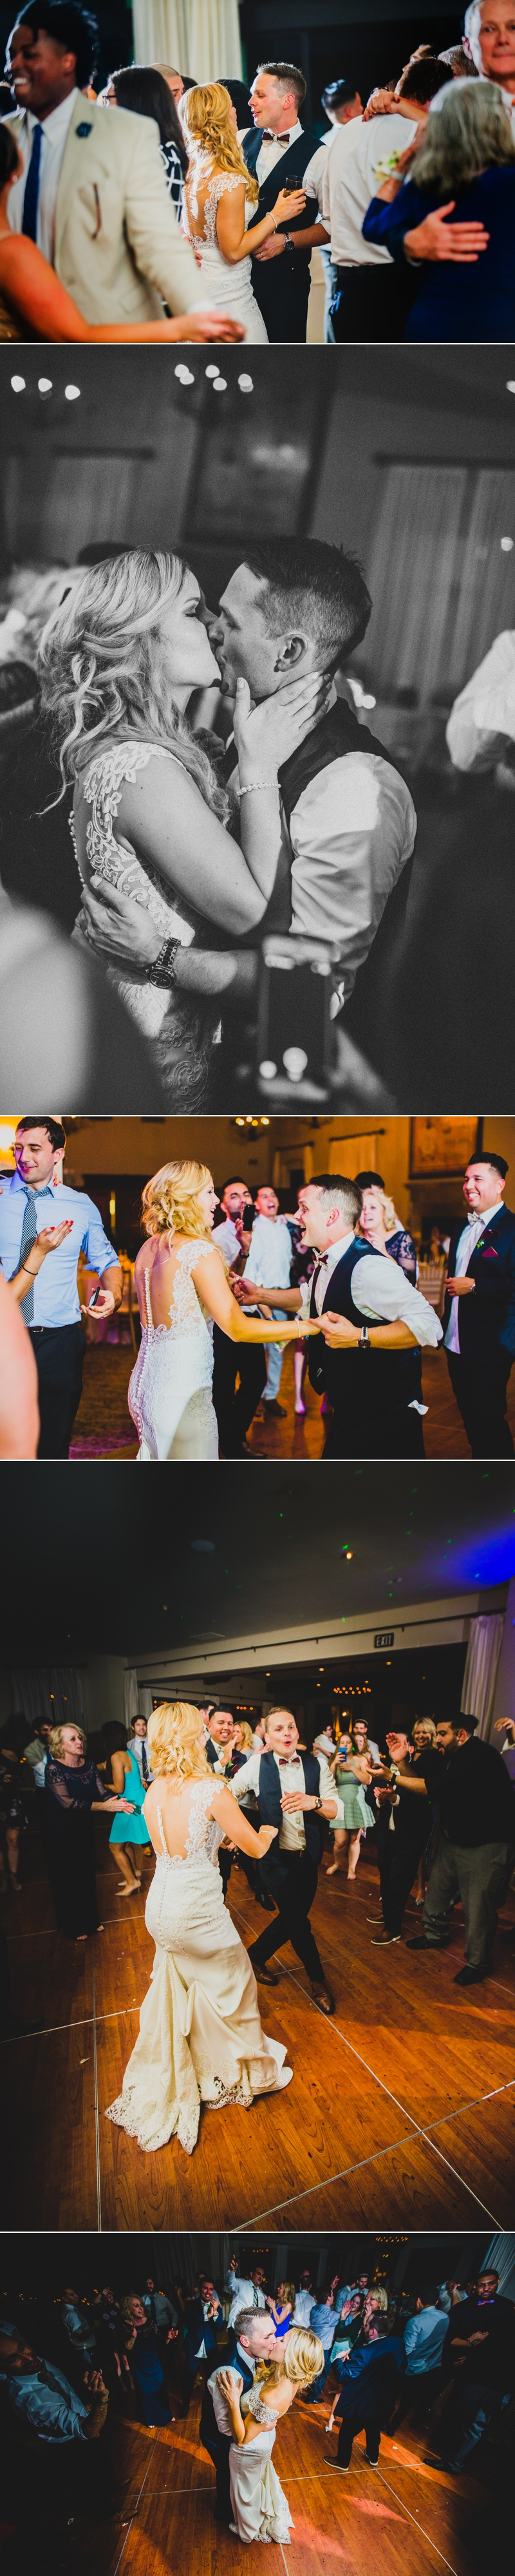 KatyCoreyReception 6.jpg